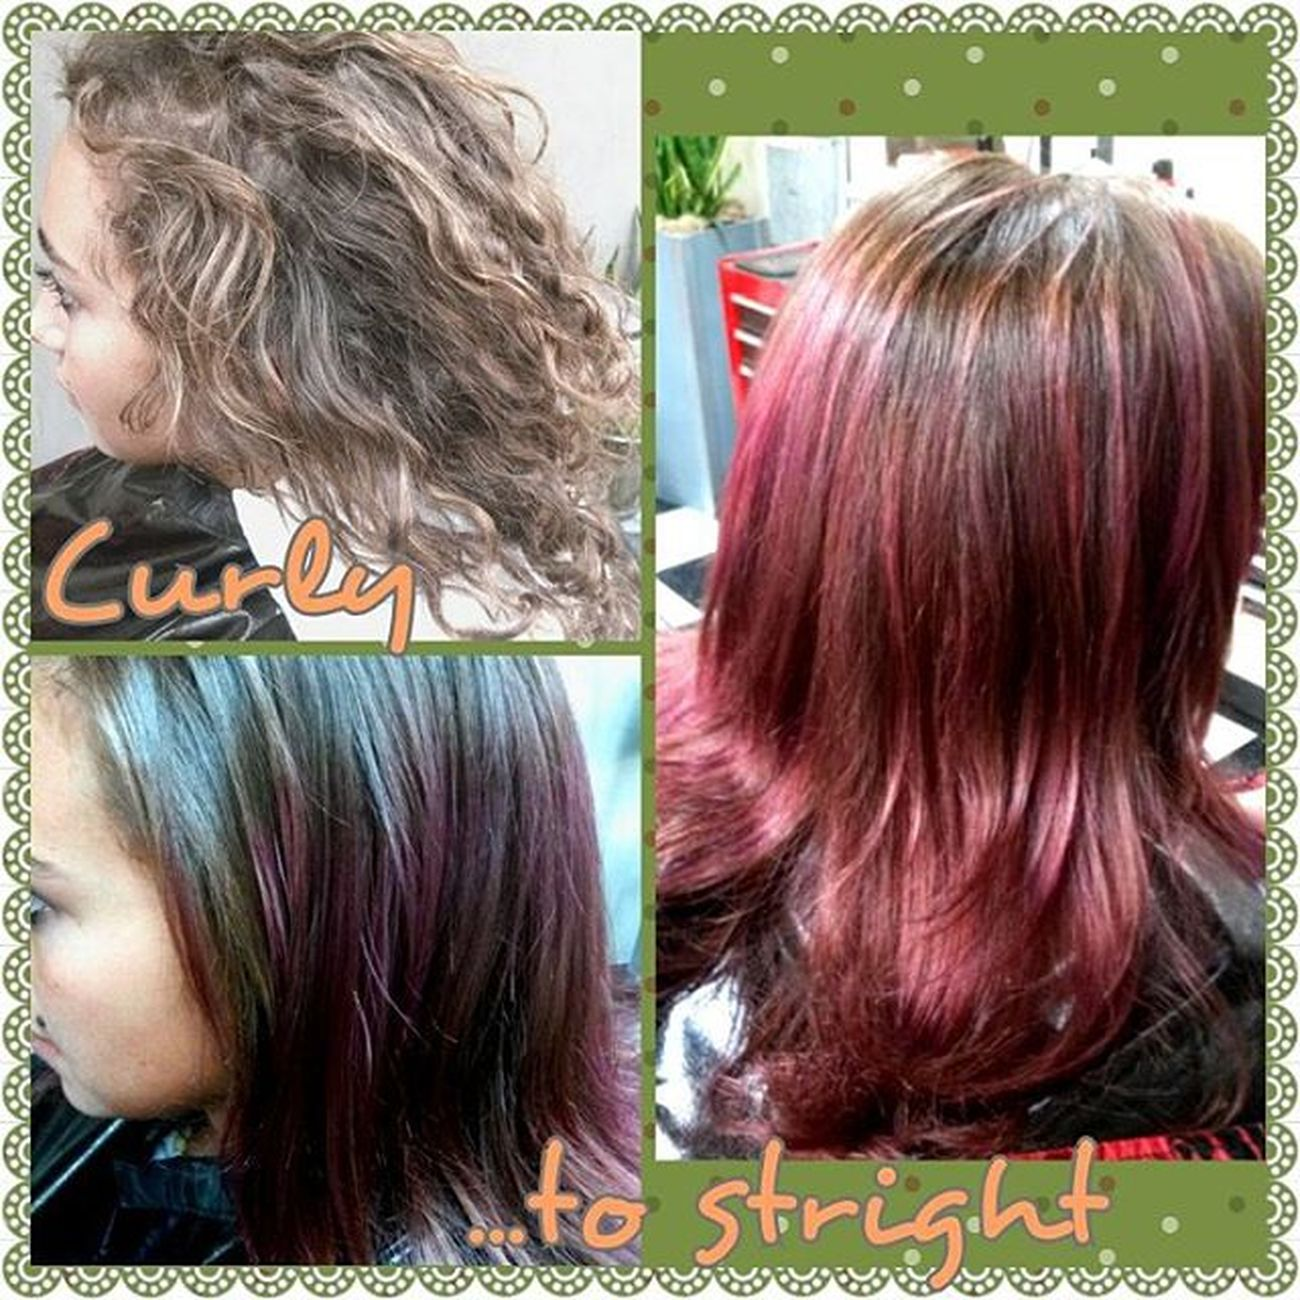 Curlytostright Beautifully  Beautybytammy Mainstreethaircompany huntingtonbeach